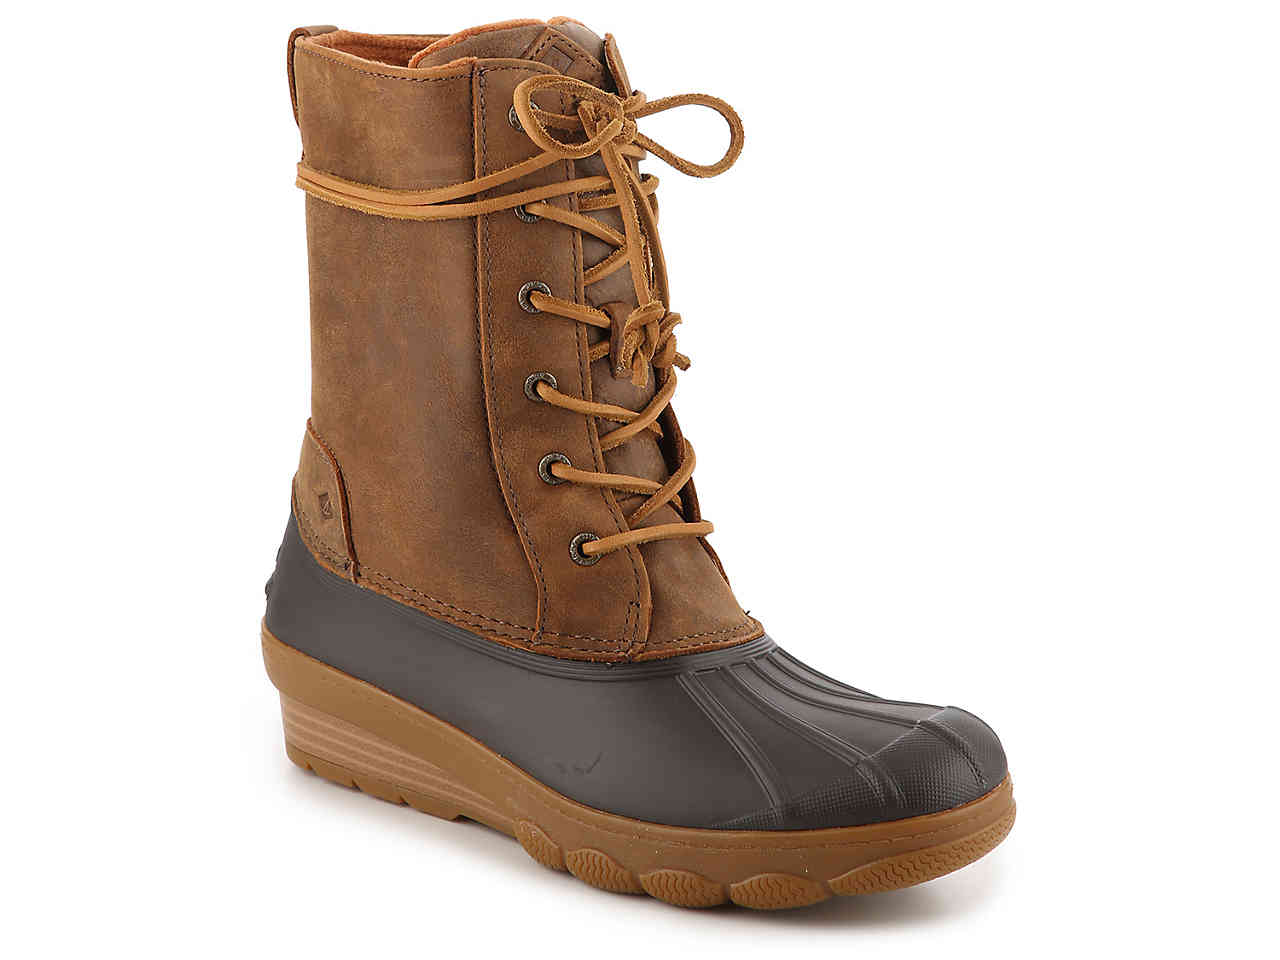 SPERRY TOP-SIDER SALTWATER REEVE WEDGE DUCK BOOT